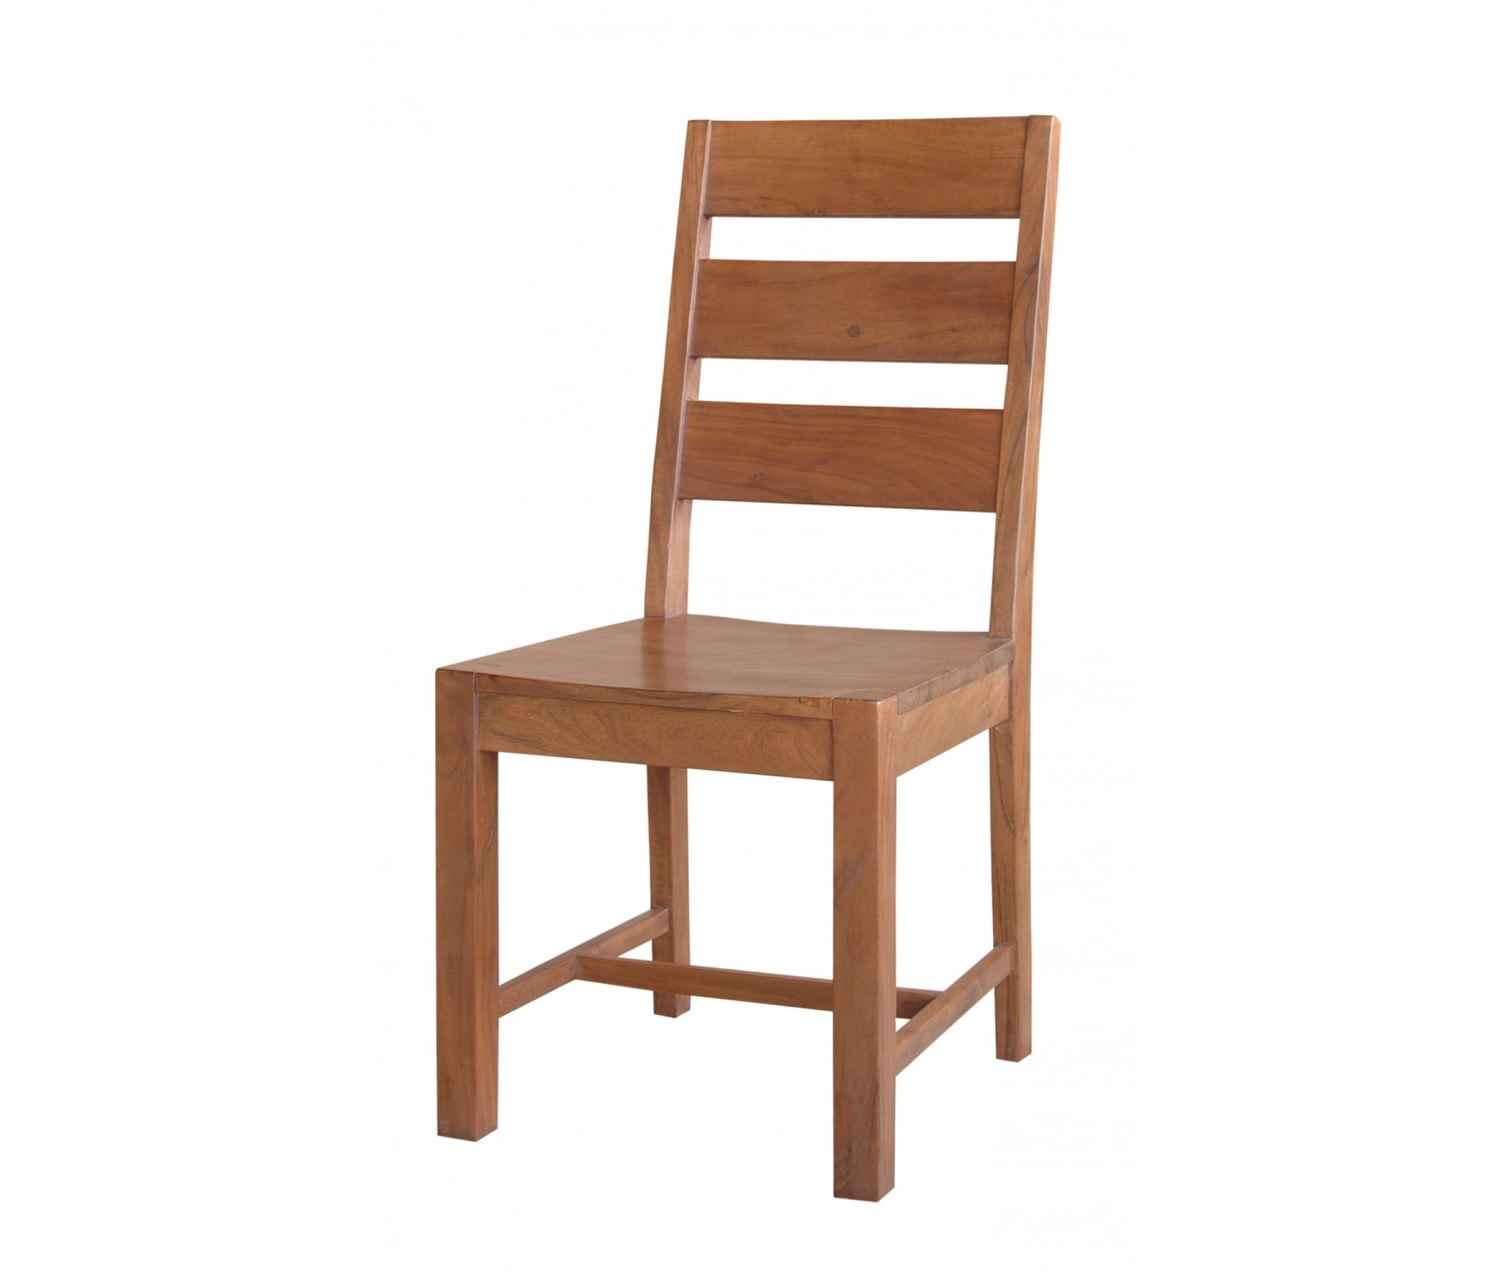 Wooden Dining Room Chair Furniture